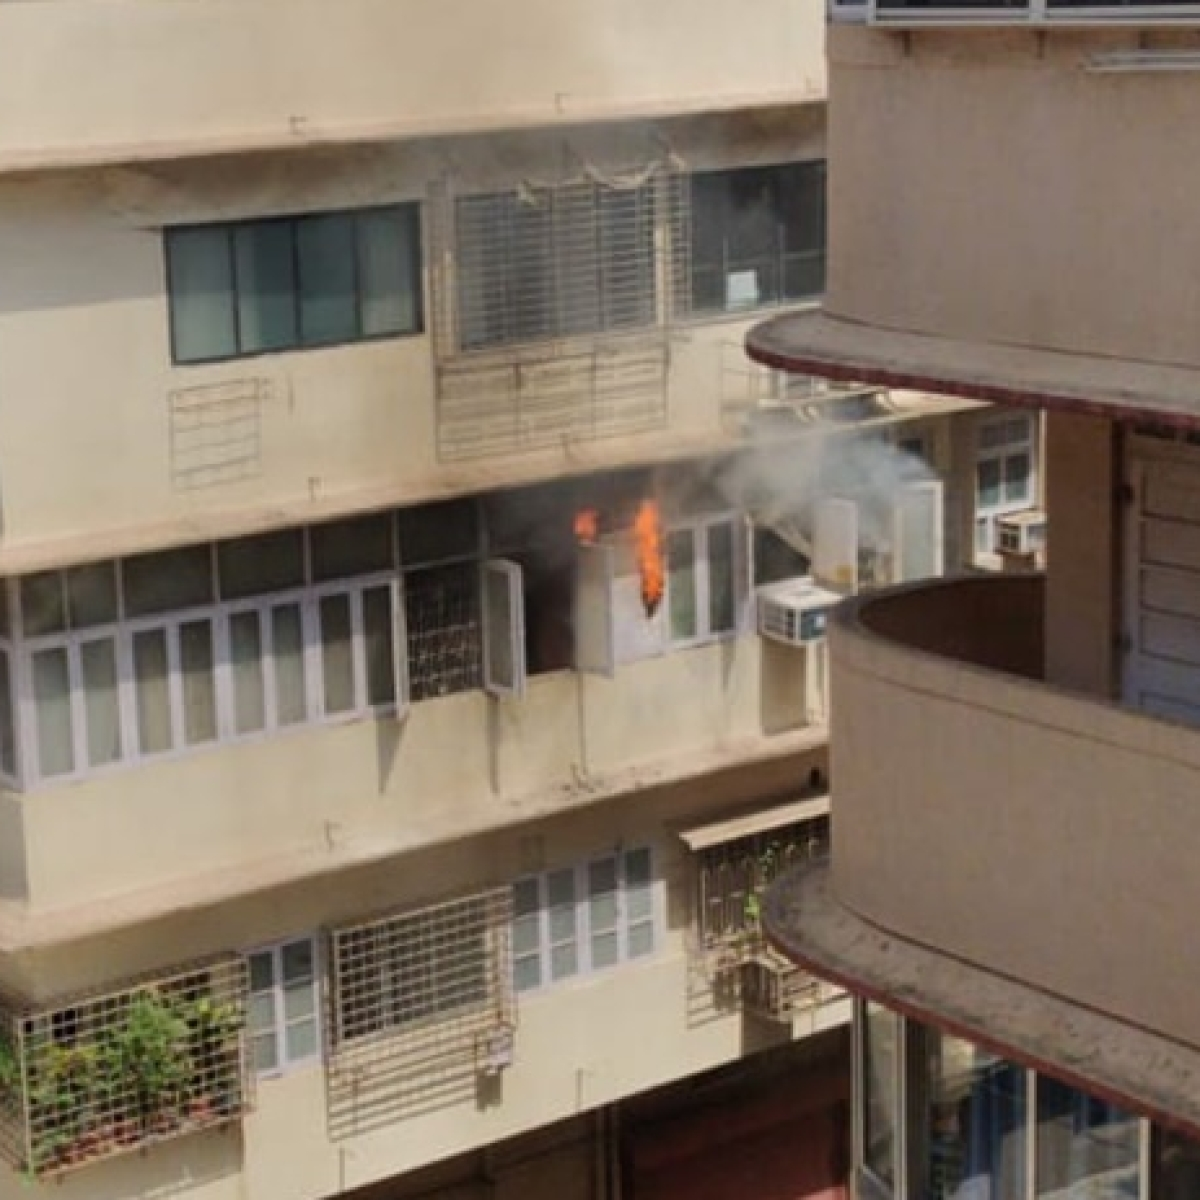 Fire breaks out at a residential building near Wankhede stadium in Mumbai